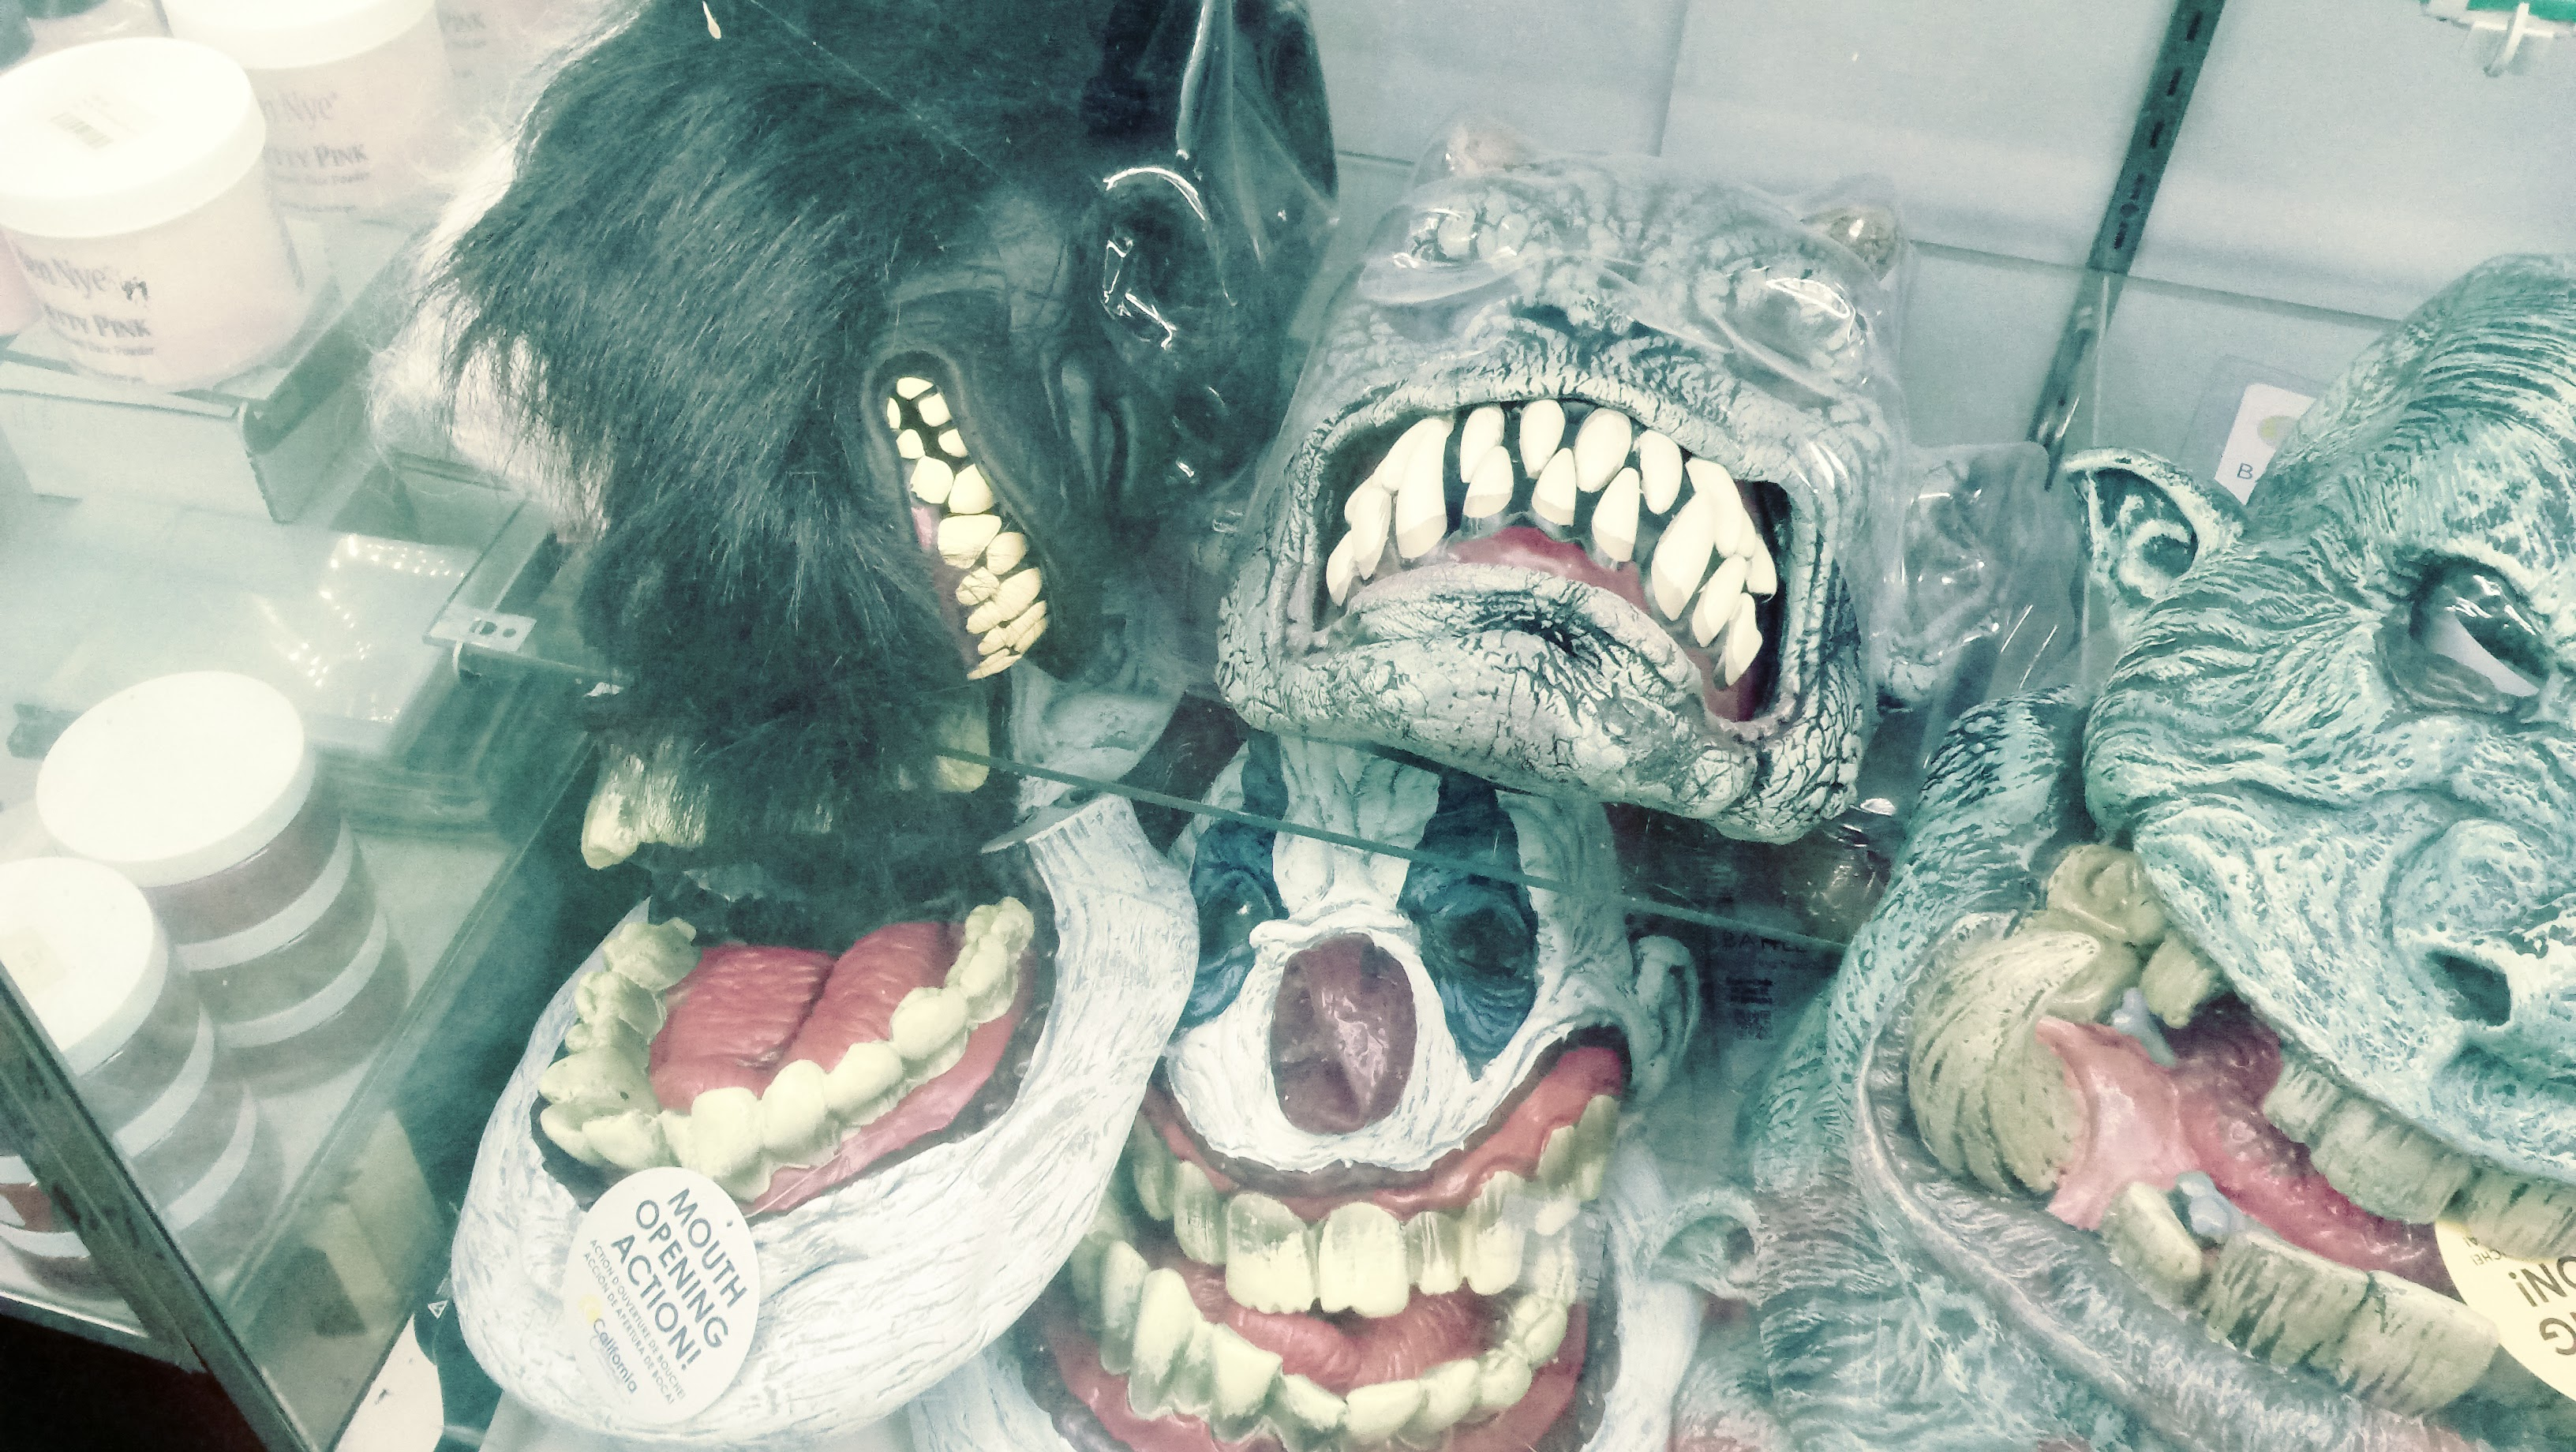 nick nackery moving mouth monster masks